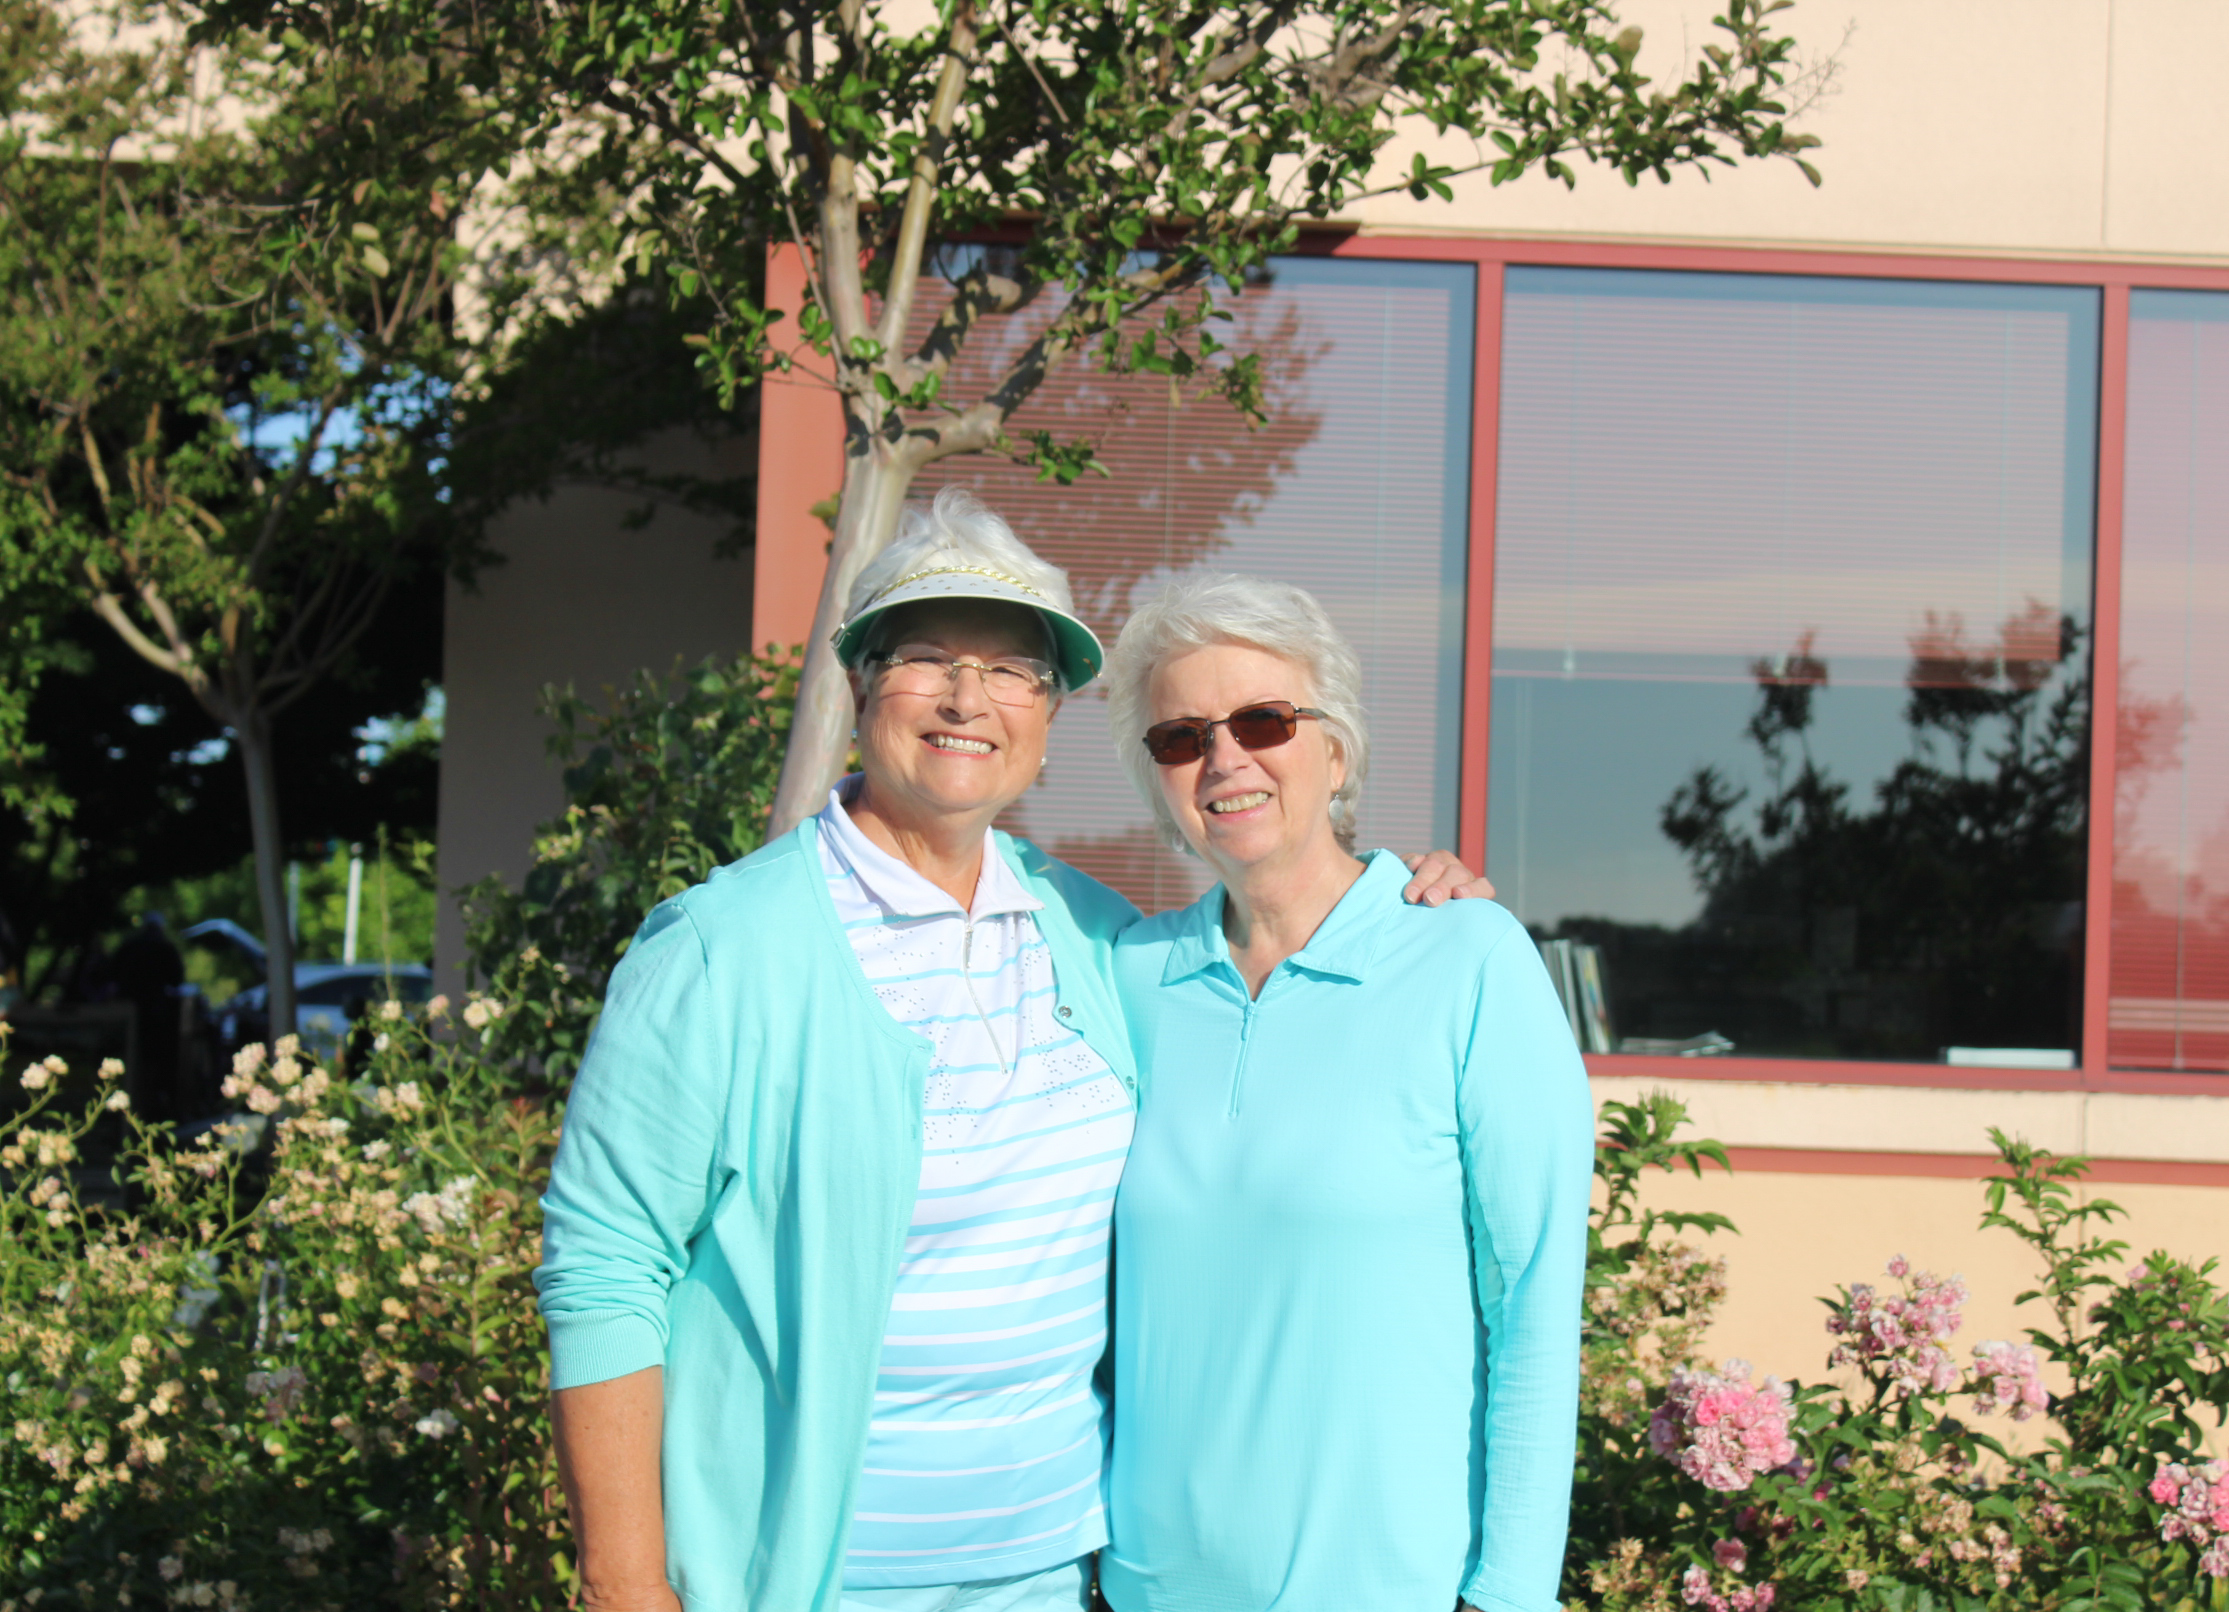 Left to right: Nancy Boggs, Past President, and Sheila McMurphy, North Central Area Director.